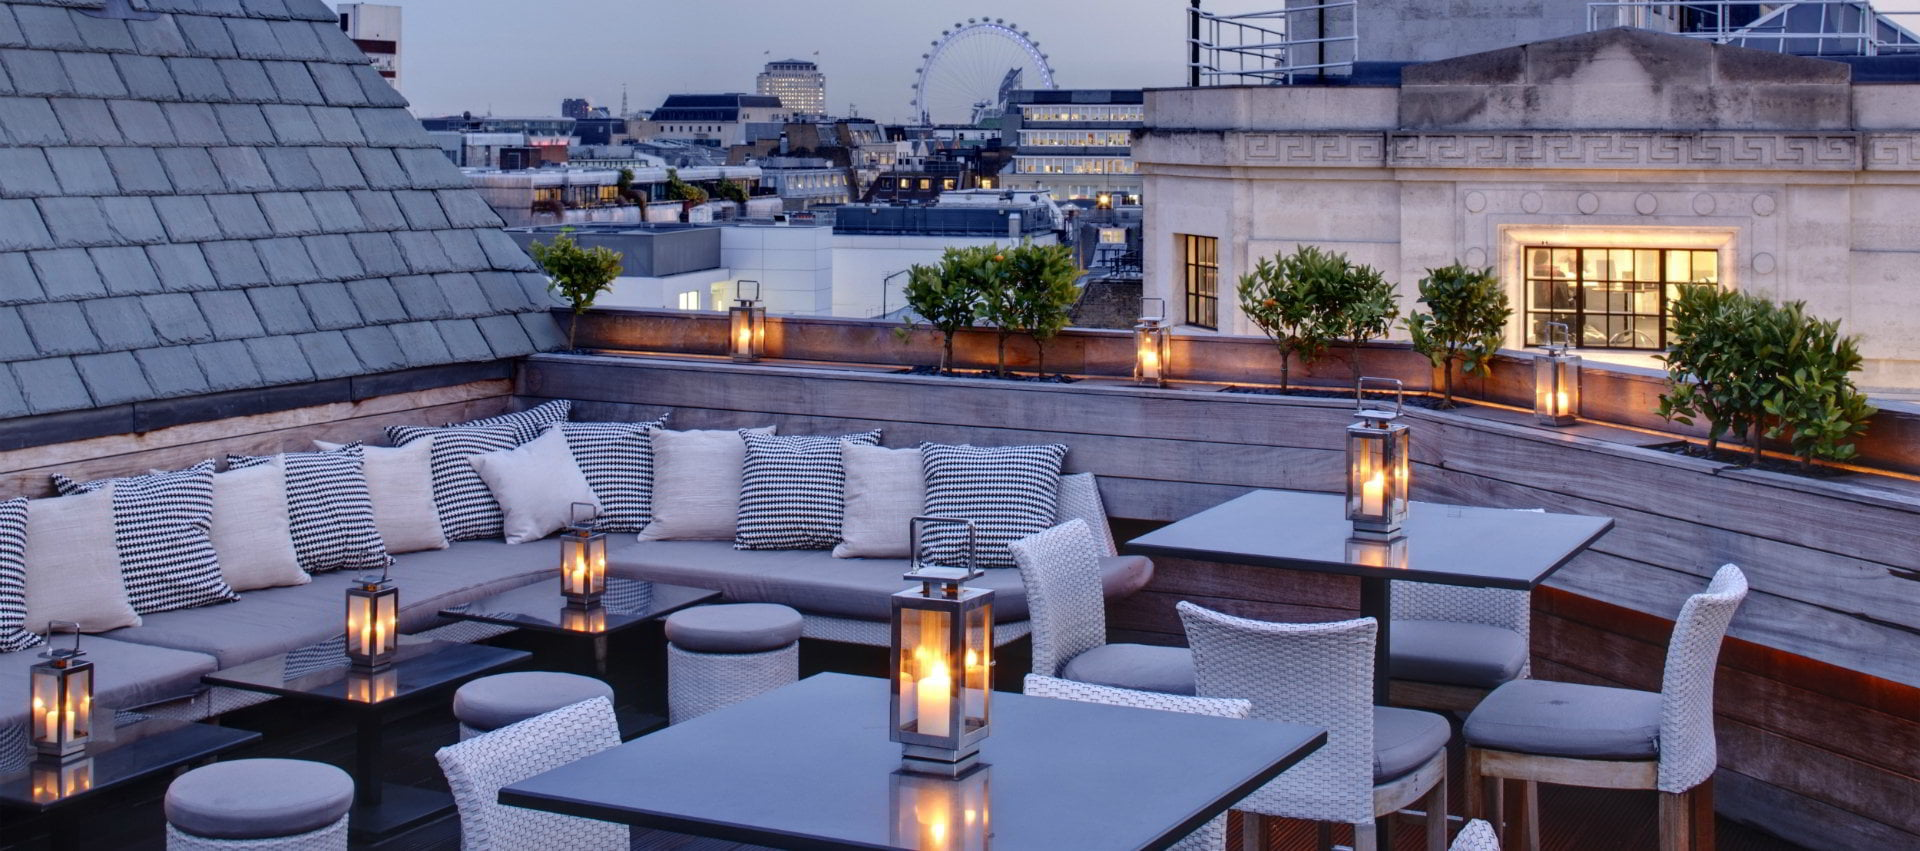 Soho Rooftop Restaurant London Aqua